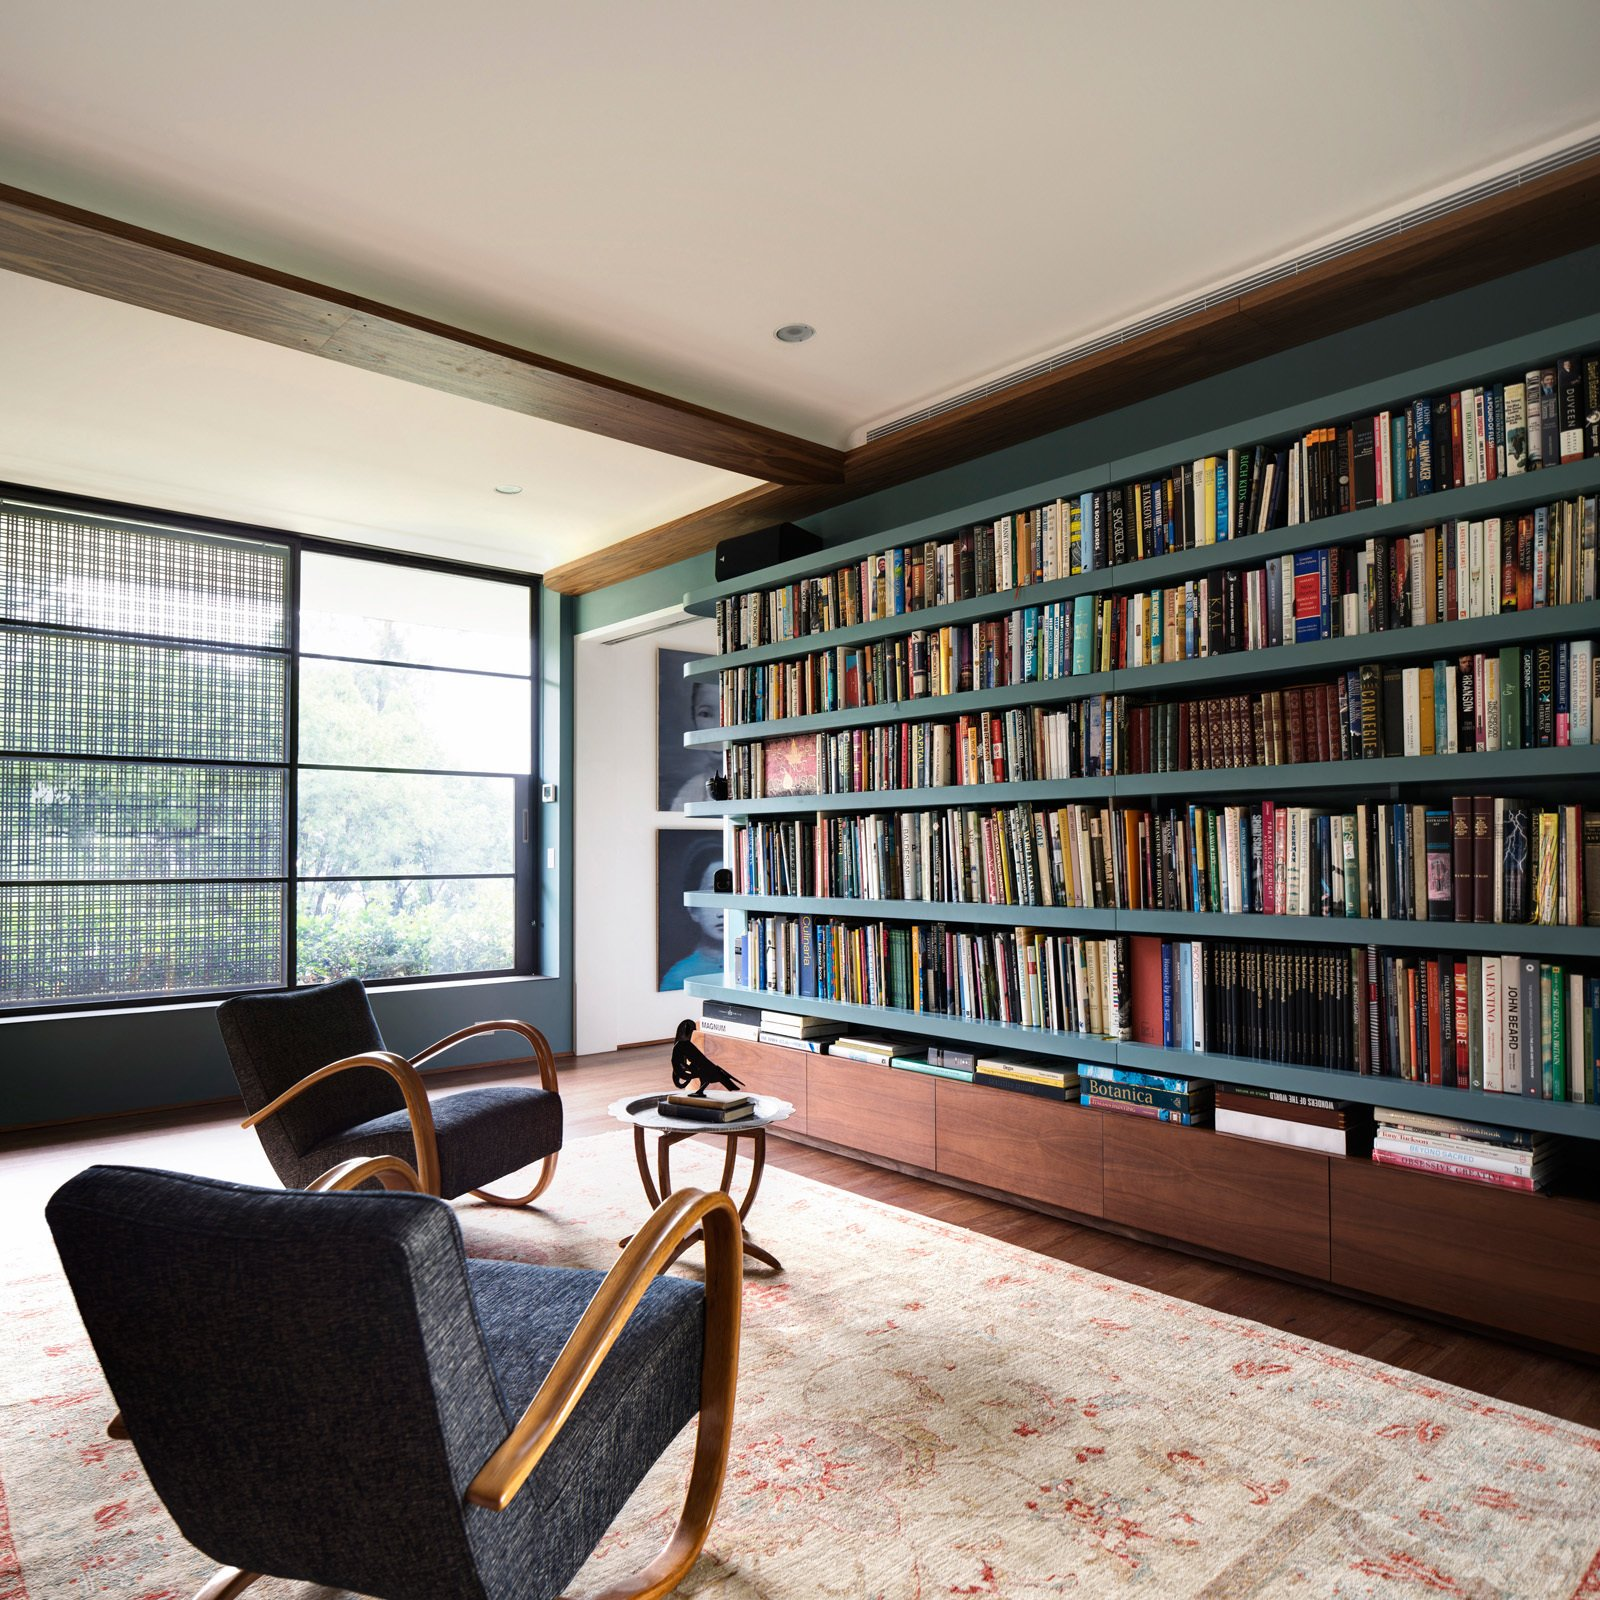 1930s Halabala [ www.designaddict.com/atlas/designers/Jindrich-Halabala/ ] reading chairs contemplate the densely packed library. © Justin Alexander  Harbour Front-Row Seat by Luigi Rosselli Architects